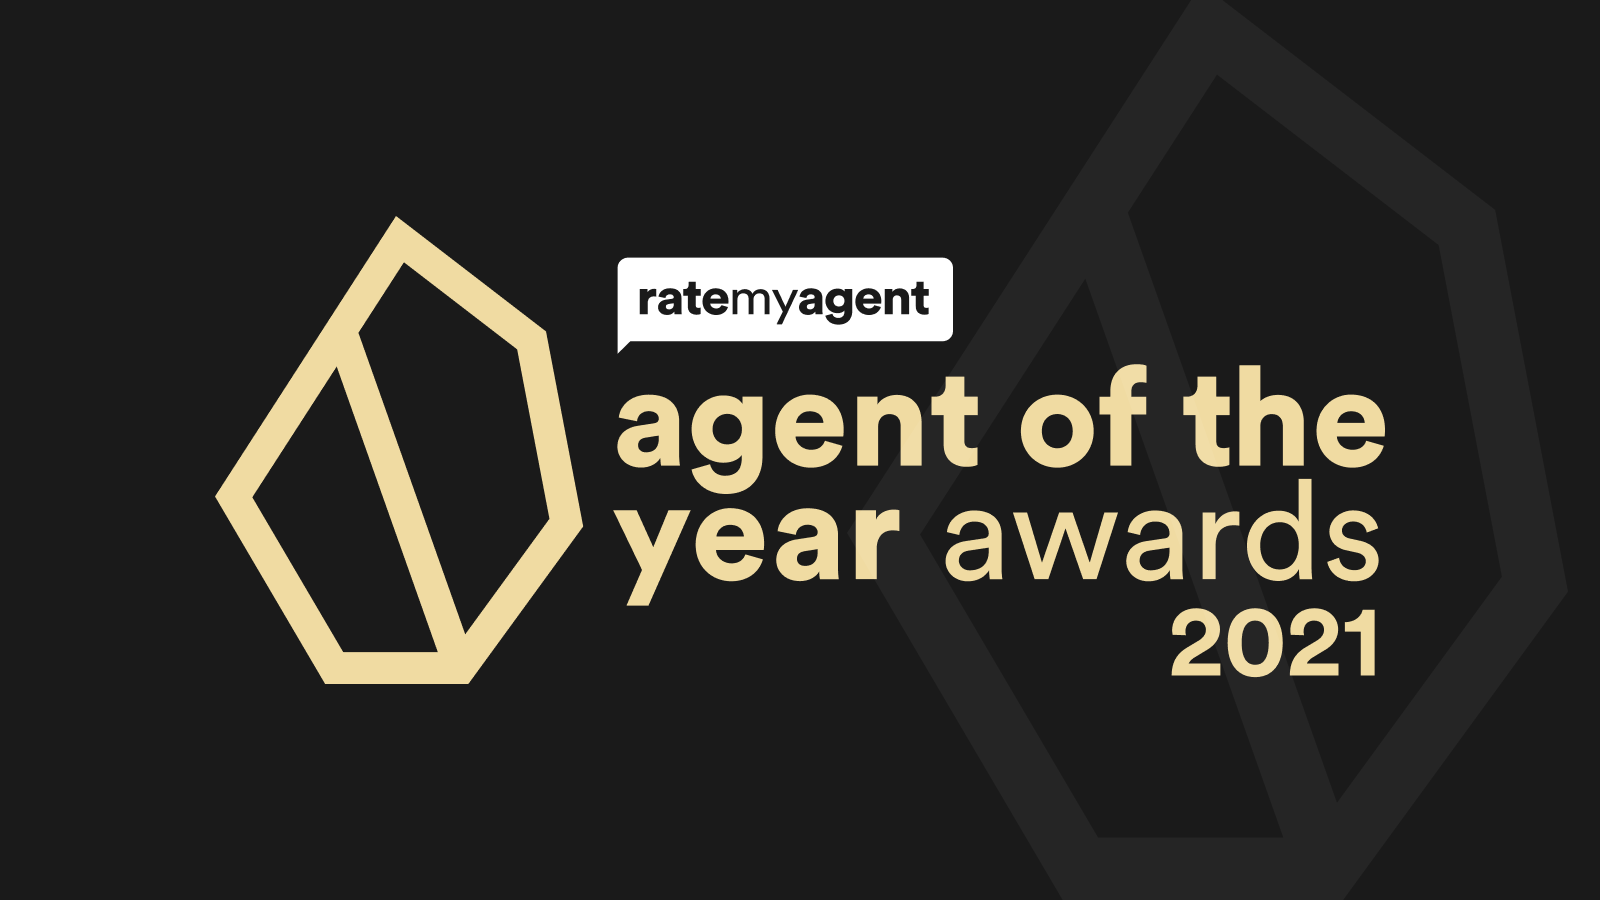 Introducing: The 2021 Agent of the Year Award winners